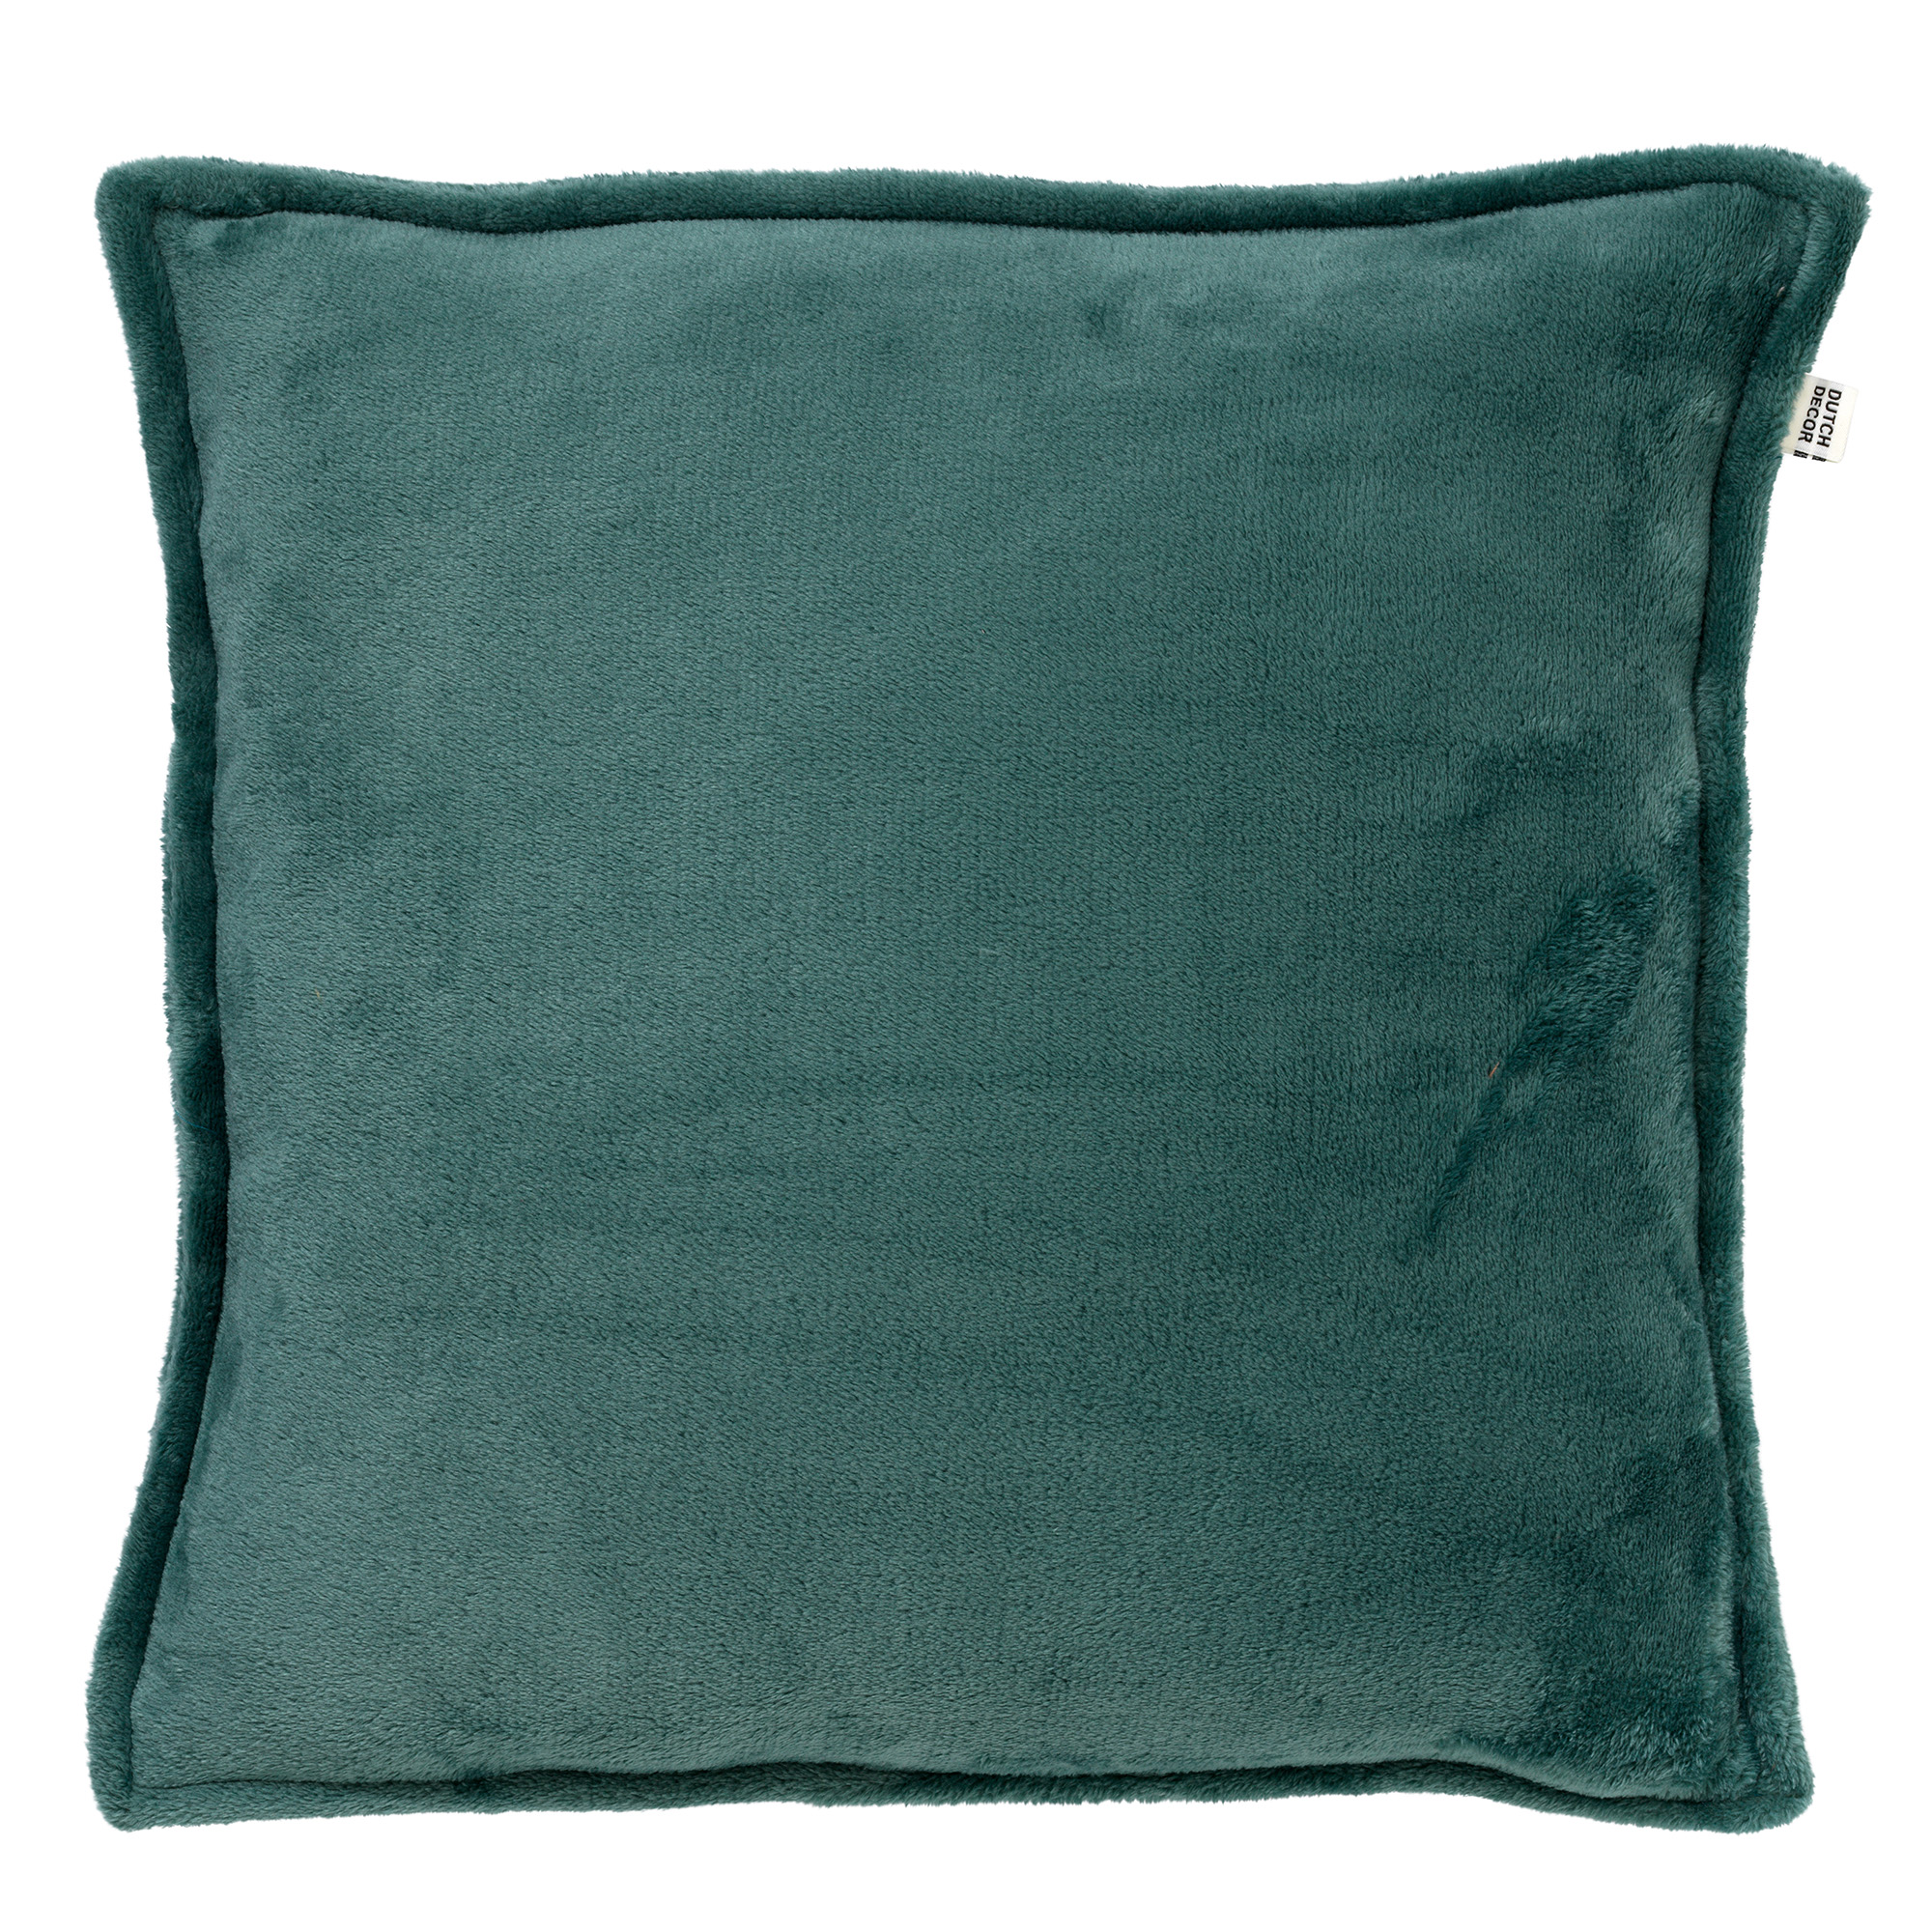 CILLY - Sierkussen van fleece Sagebrush Green 45x45 cm